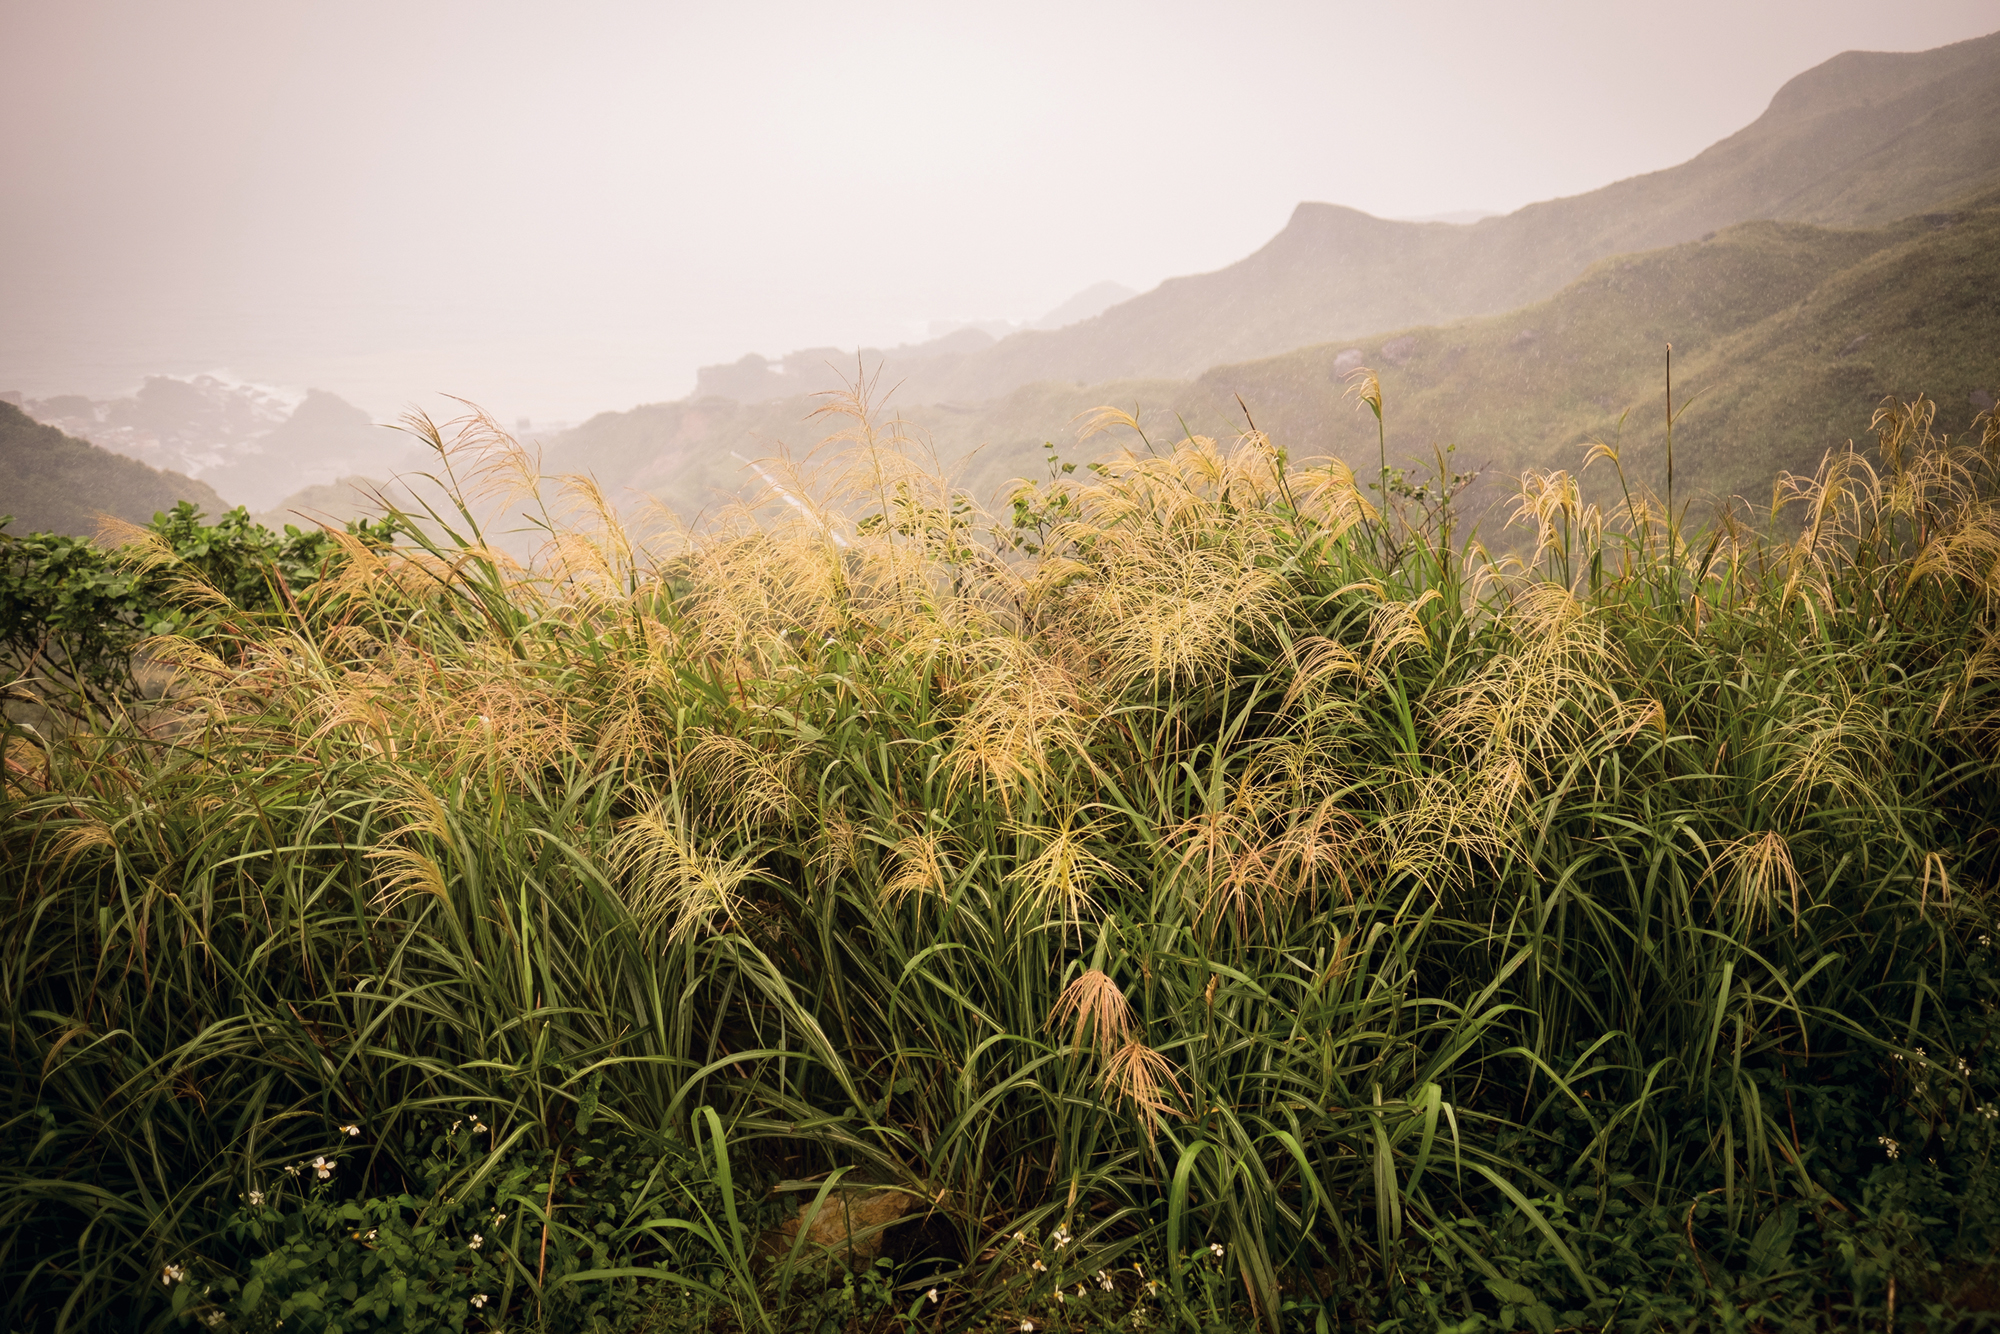 Silvergrass flowers at the foot of Teapot Mountain near Jinguashi herald the arrival of late autumn.